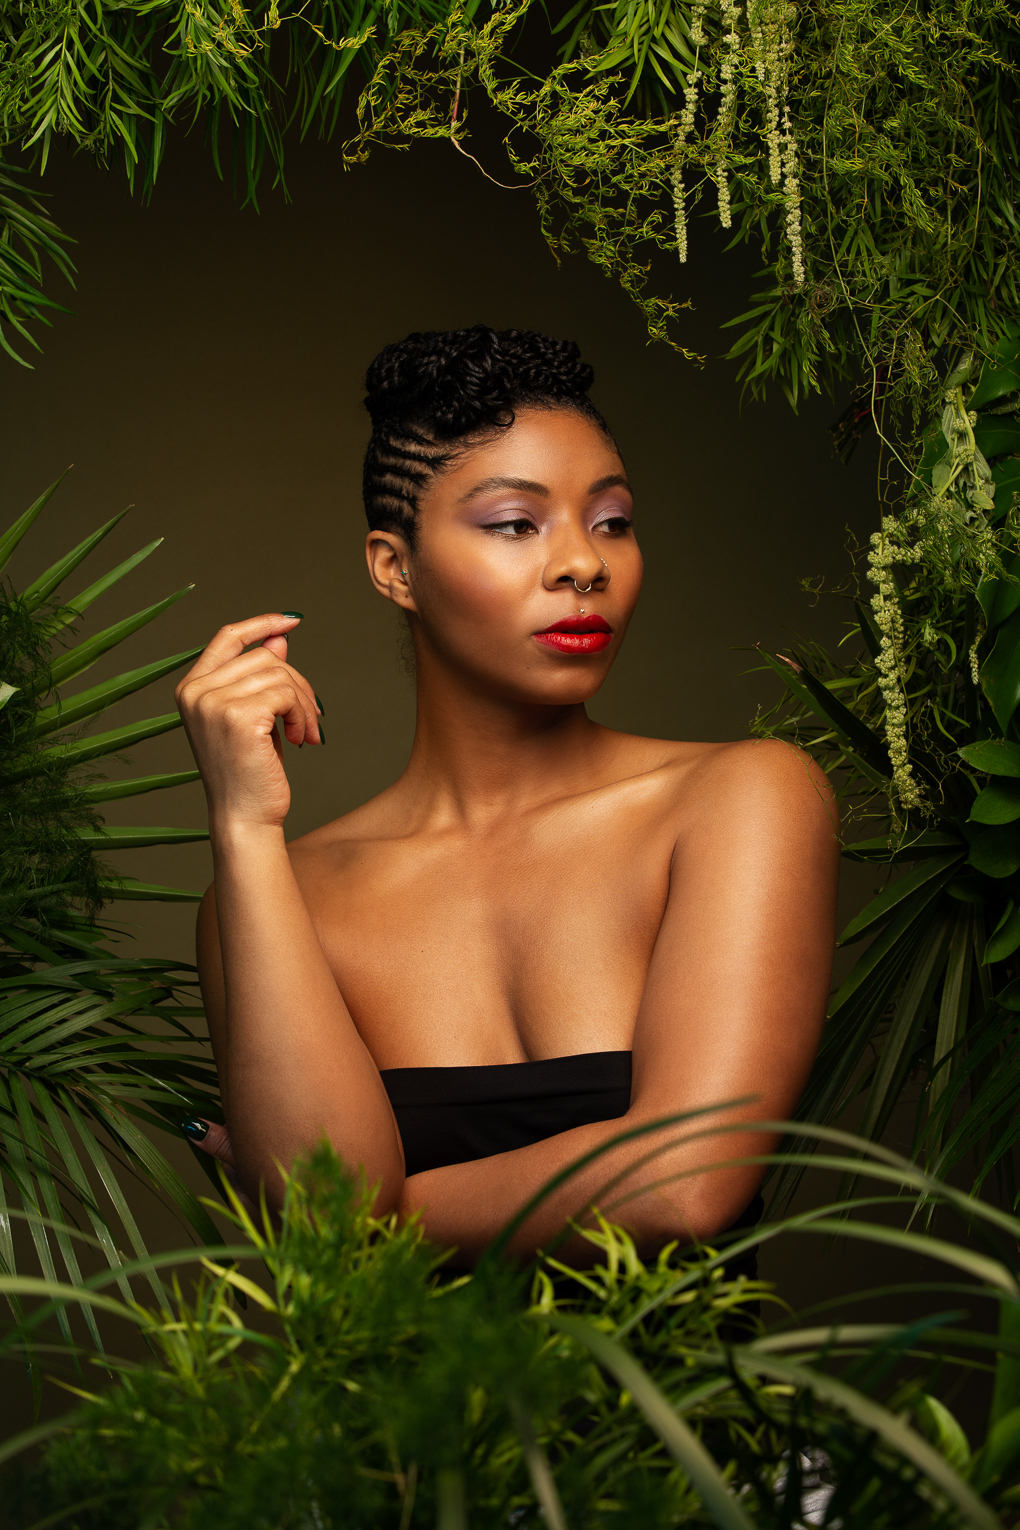 Empowered black woman's portrait with green plant set by Oakland photographer Ella Sophie